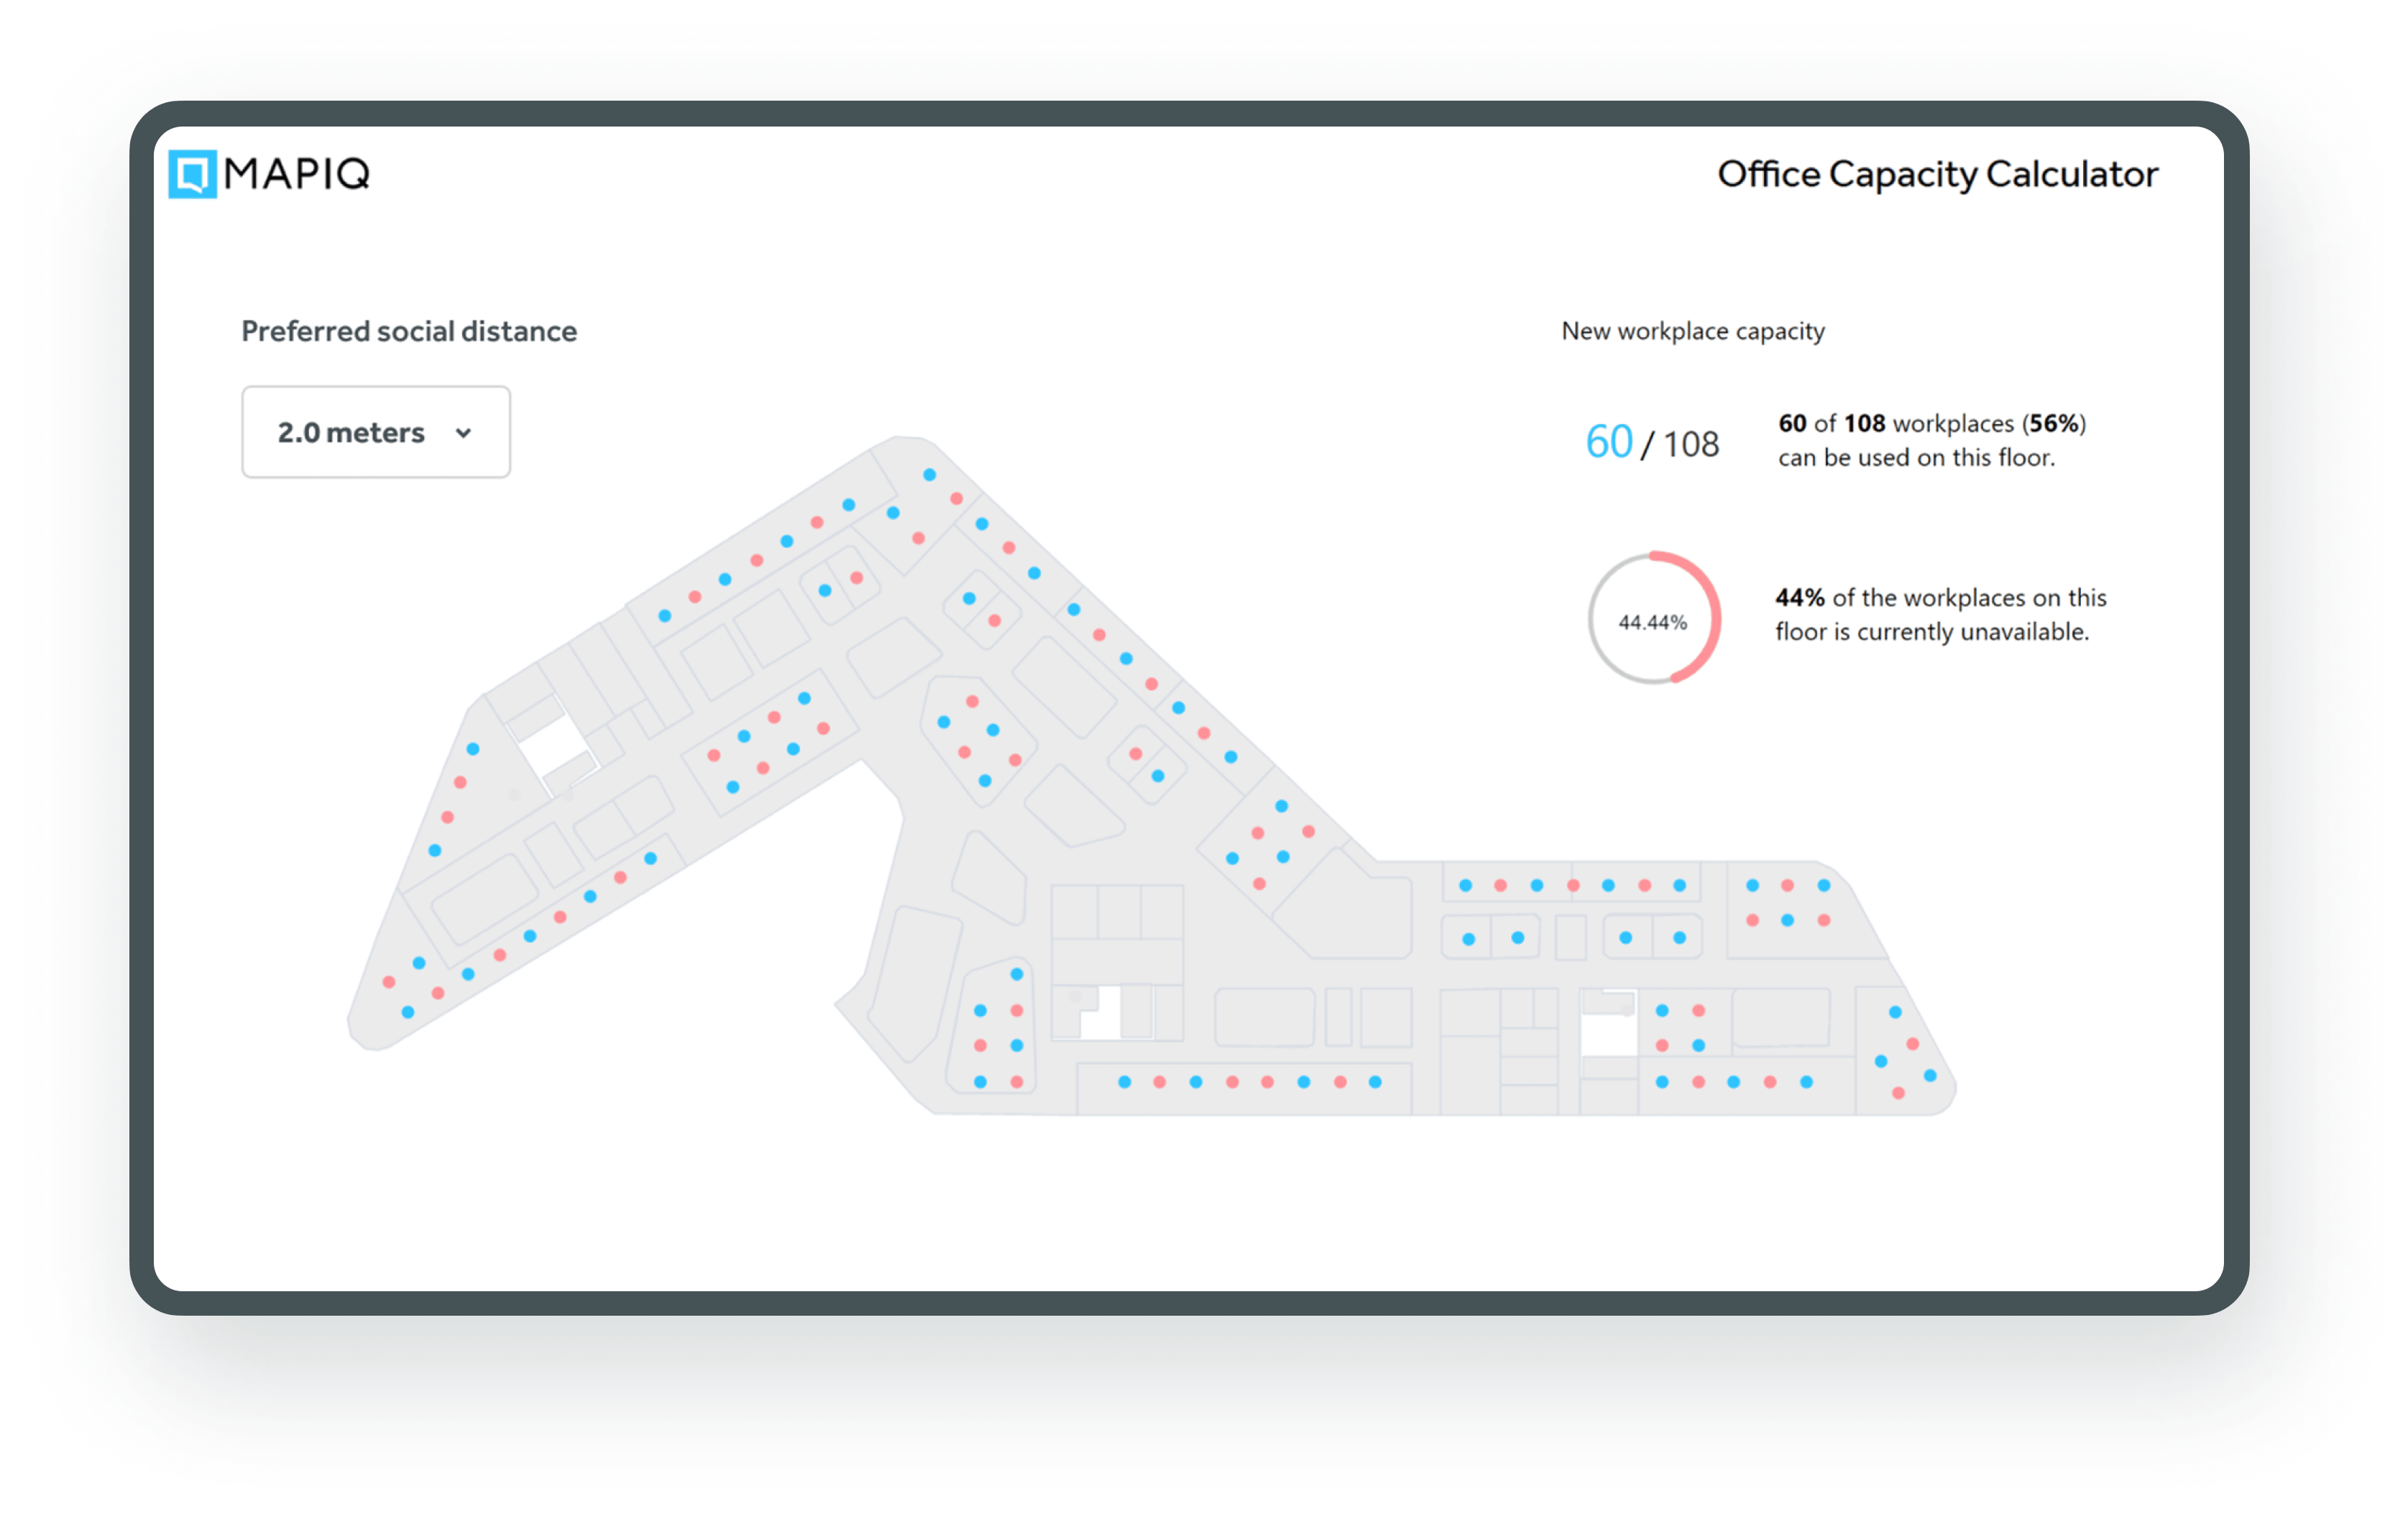 Office capacity calculator for a safe workplace